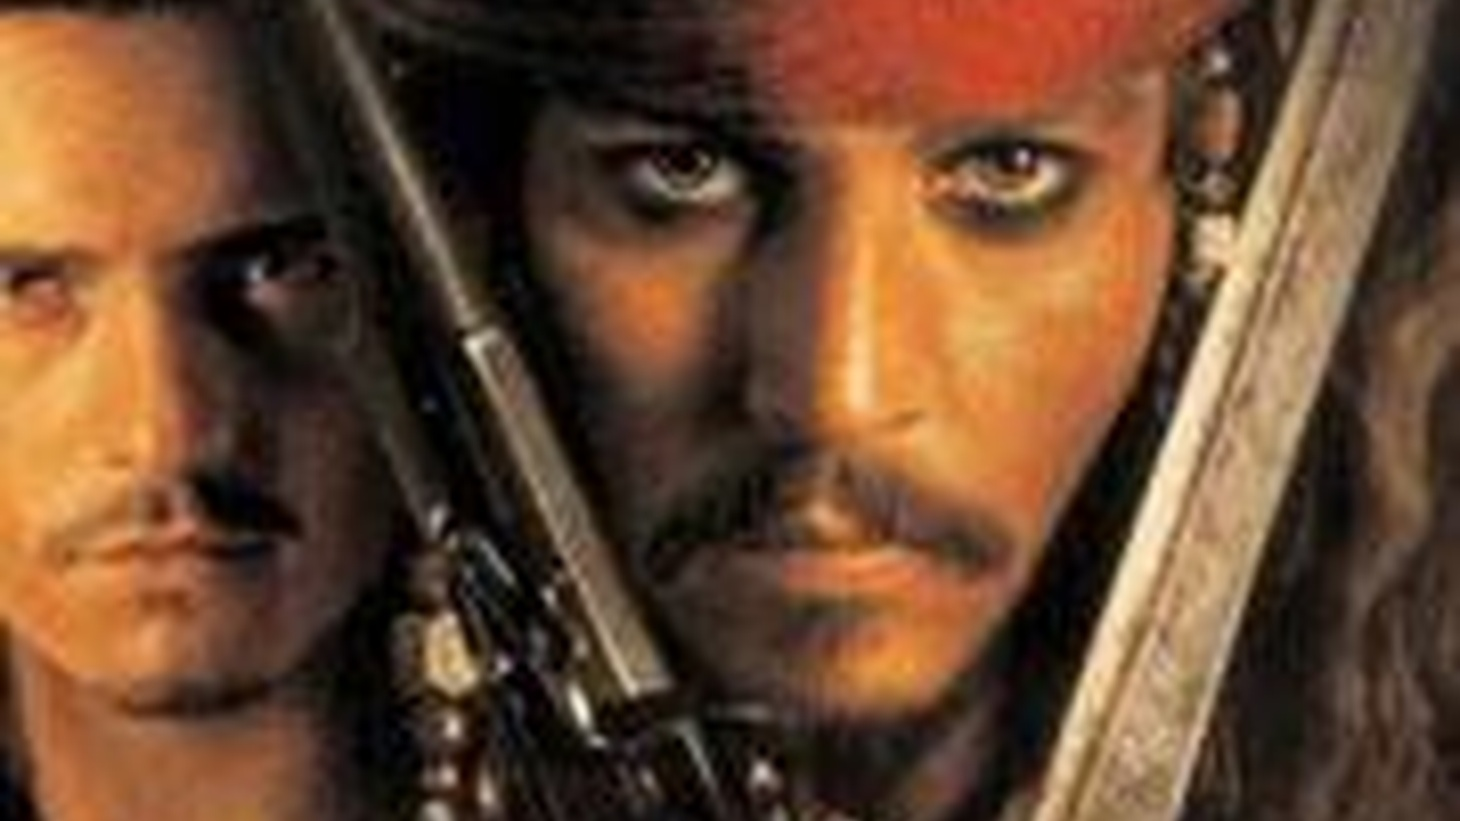 This week, Joe Morgenstern reviews Pirates of the Caribbean: Dead Man's Chest and Only Human.